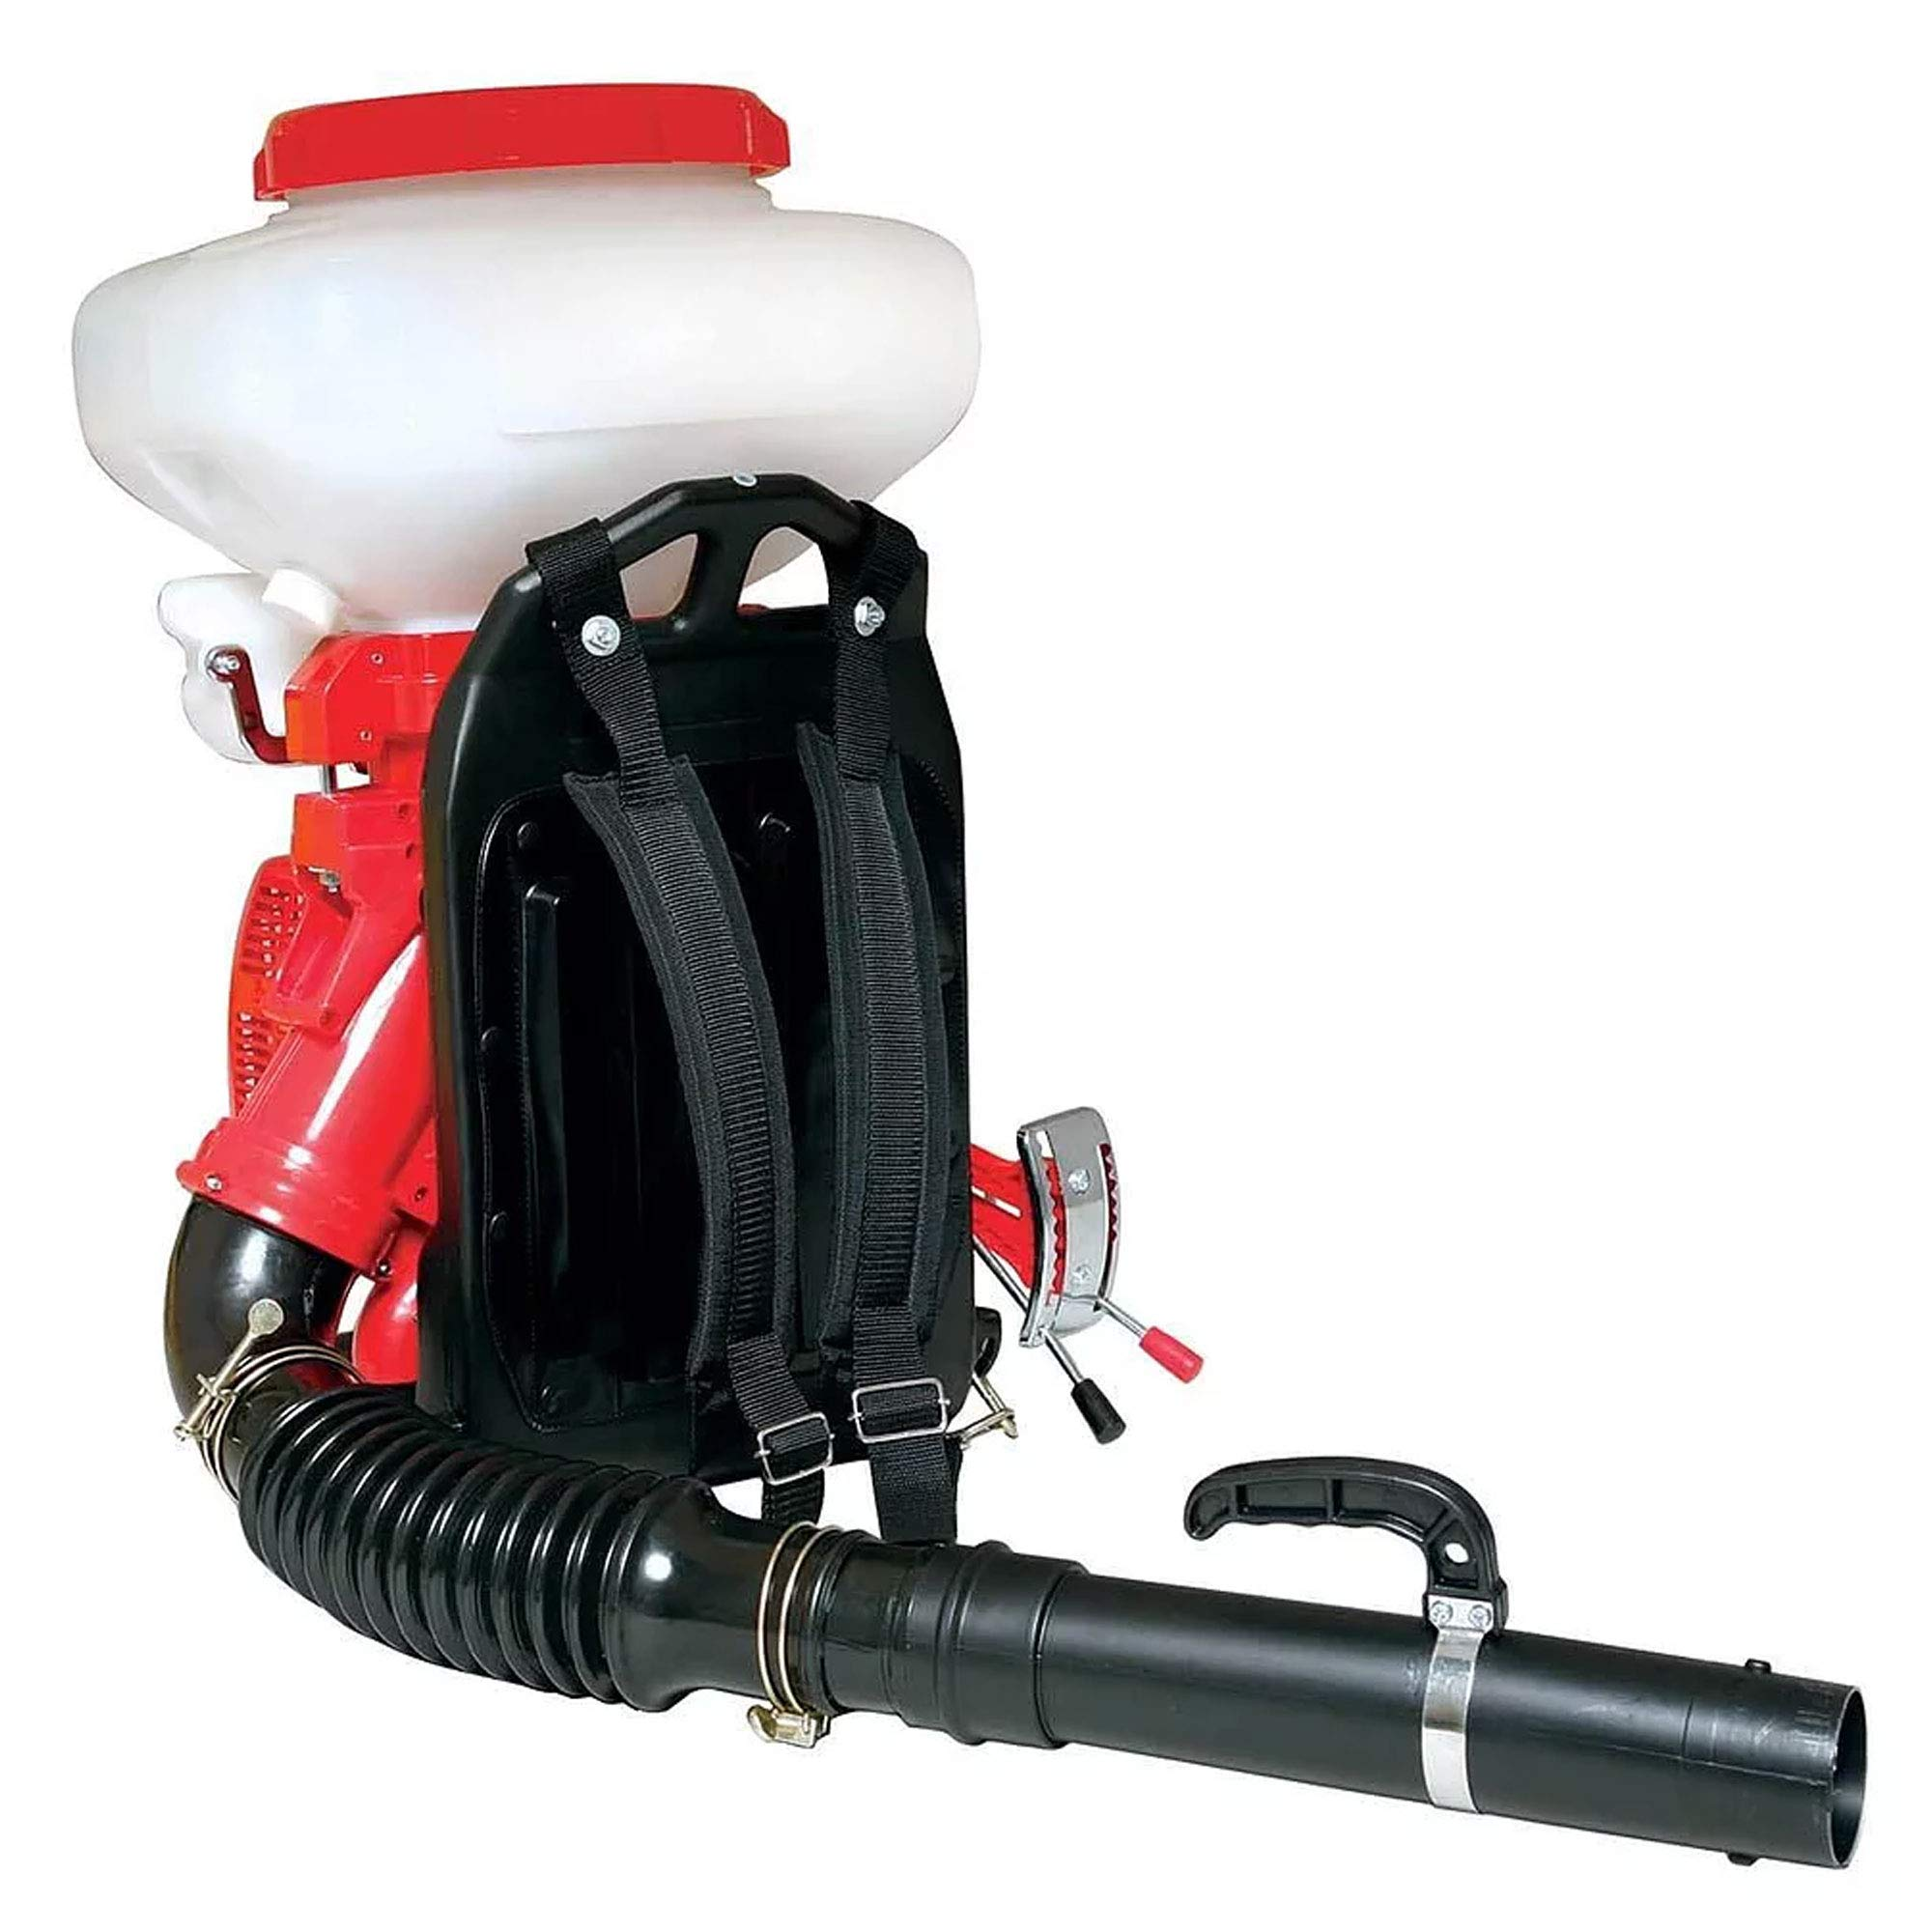 Hudson 18539 3.75 Gallon 2.4 HP 2 Stroke Gas Powered Professional Bak-Pak Power Duster by HD Hudson